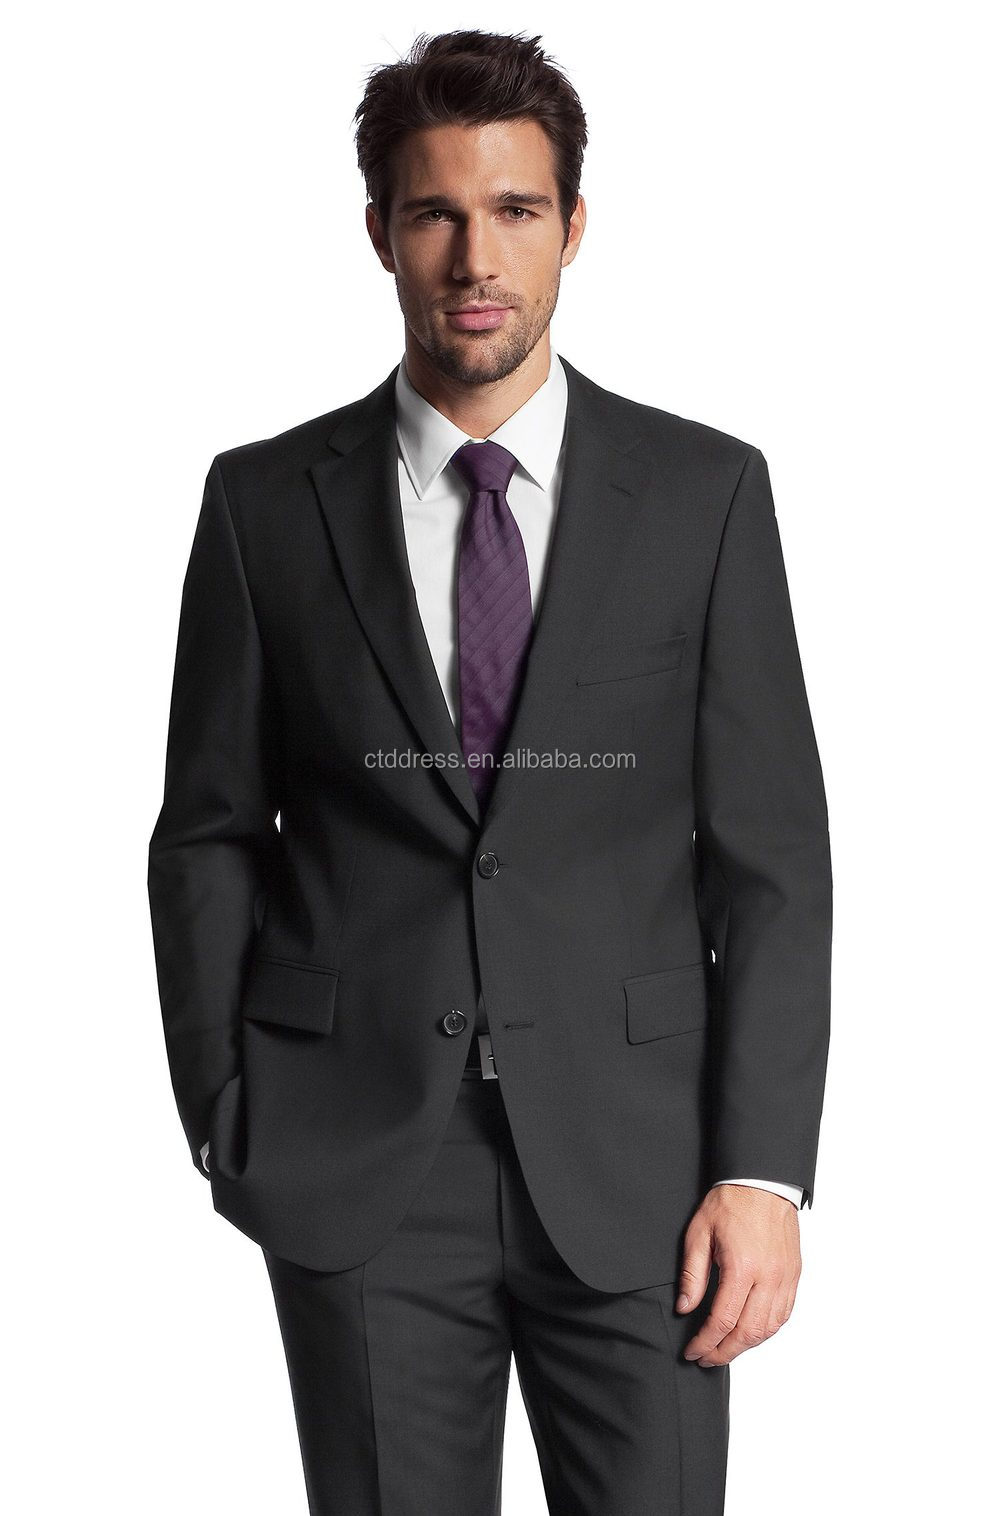 Mtm Suits Online - Lxmsuite